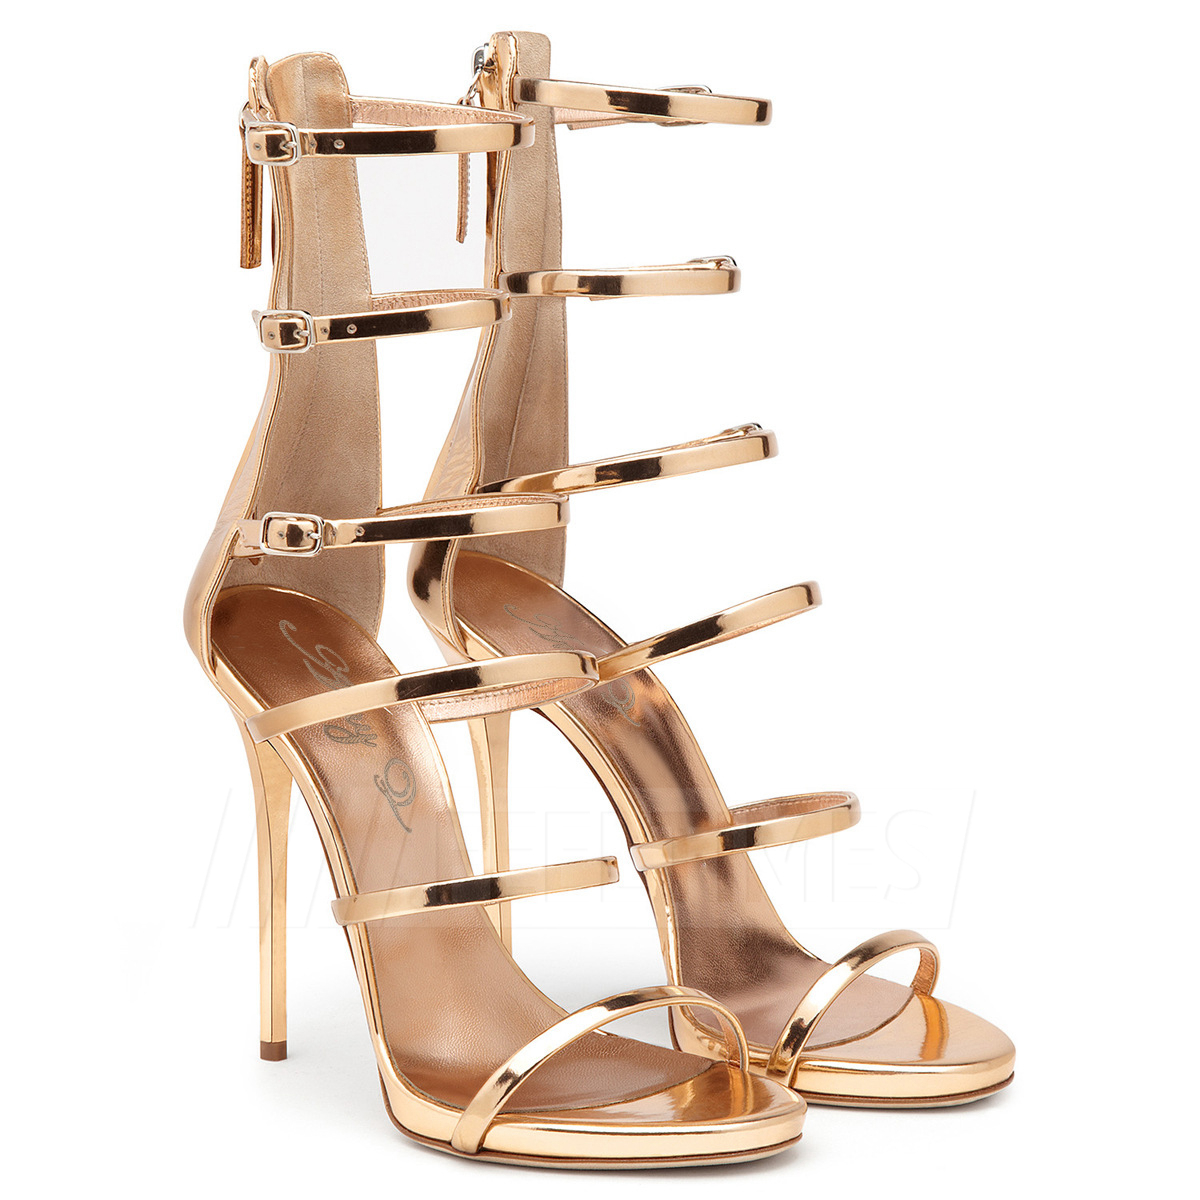 Women's PU With Zipper Buckle Heels Sandals Fashion Shoes